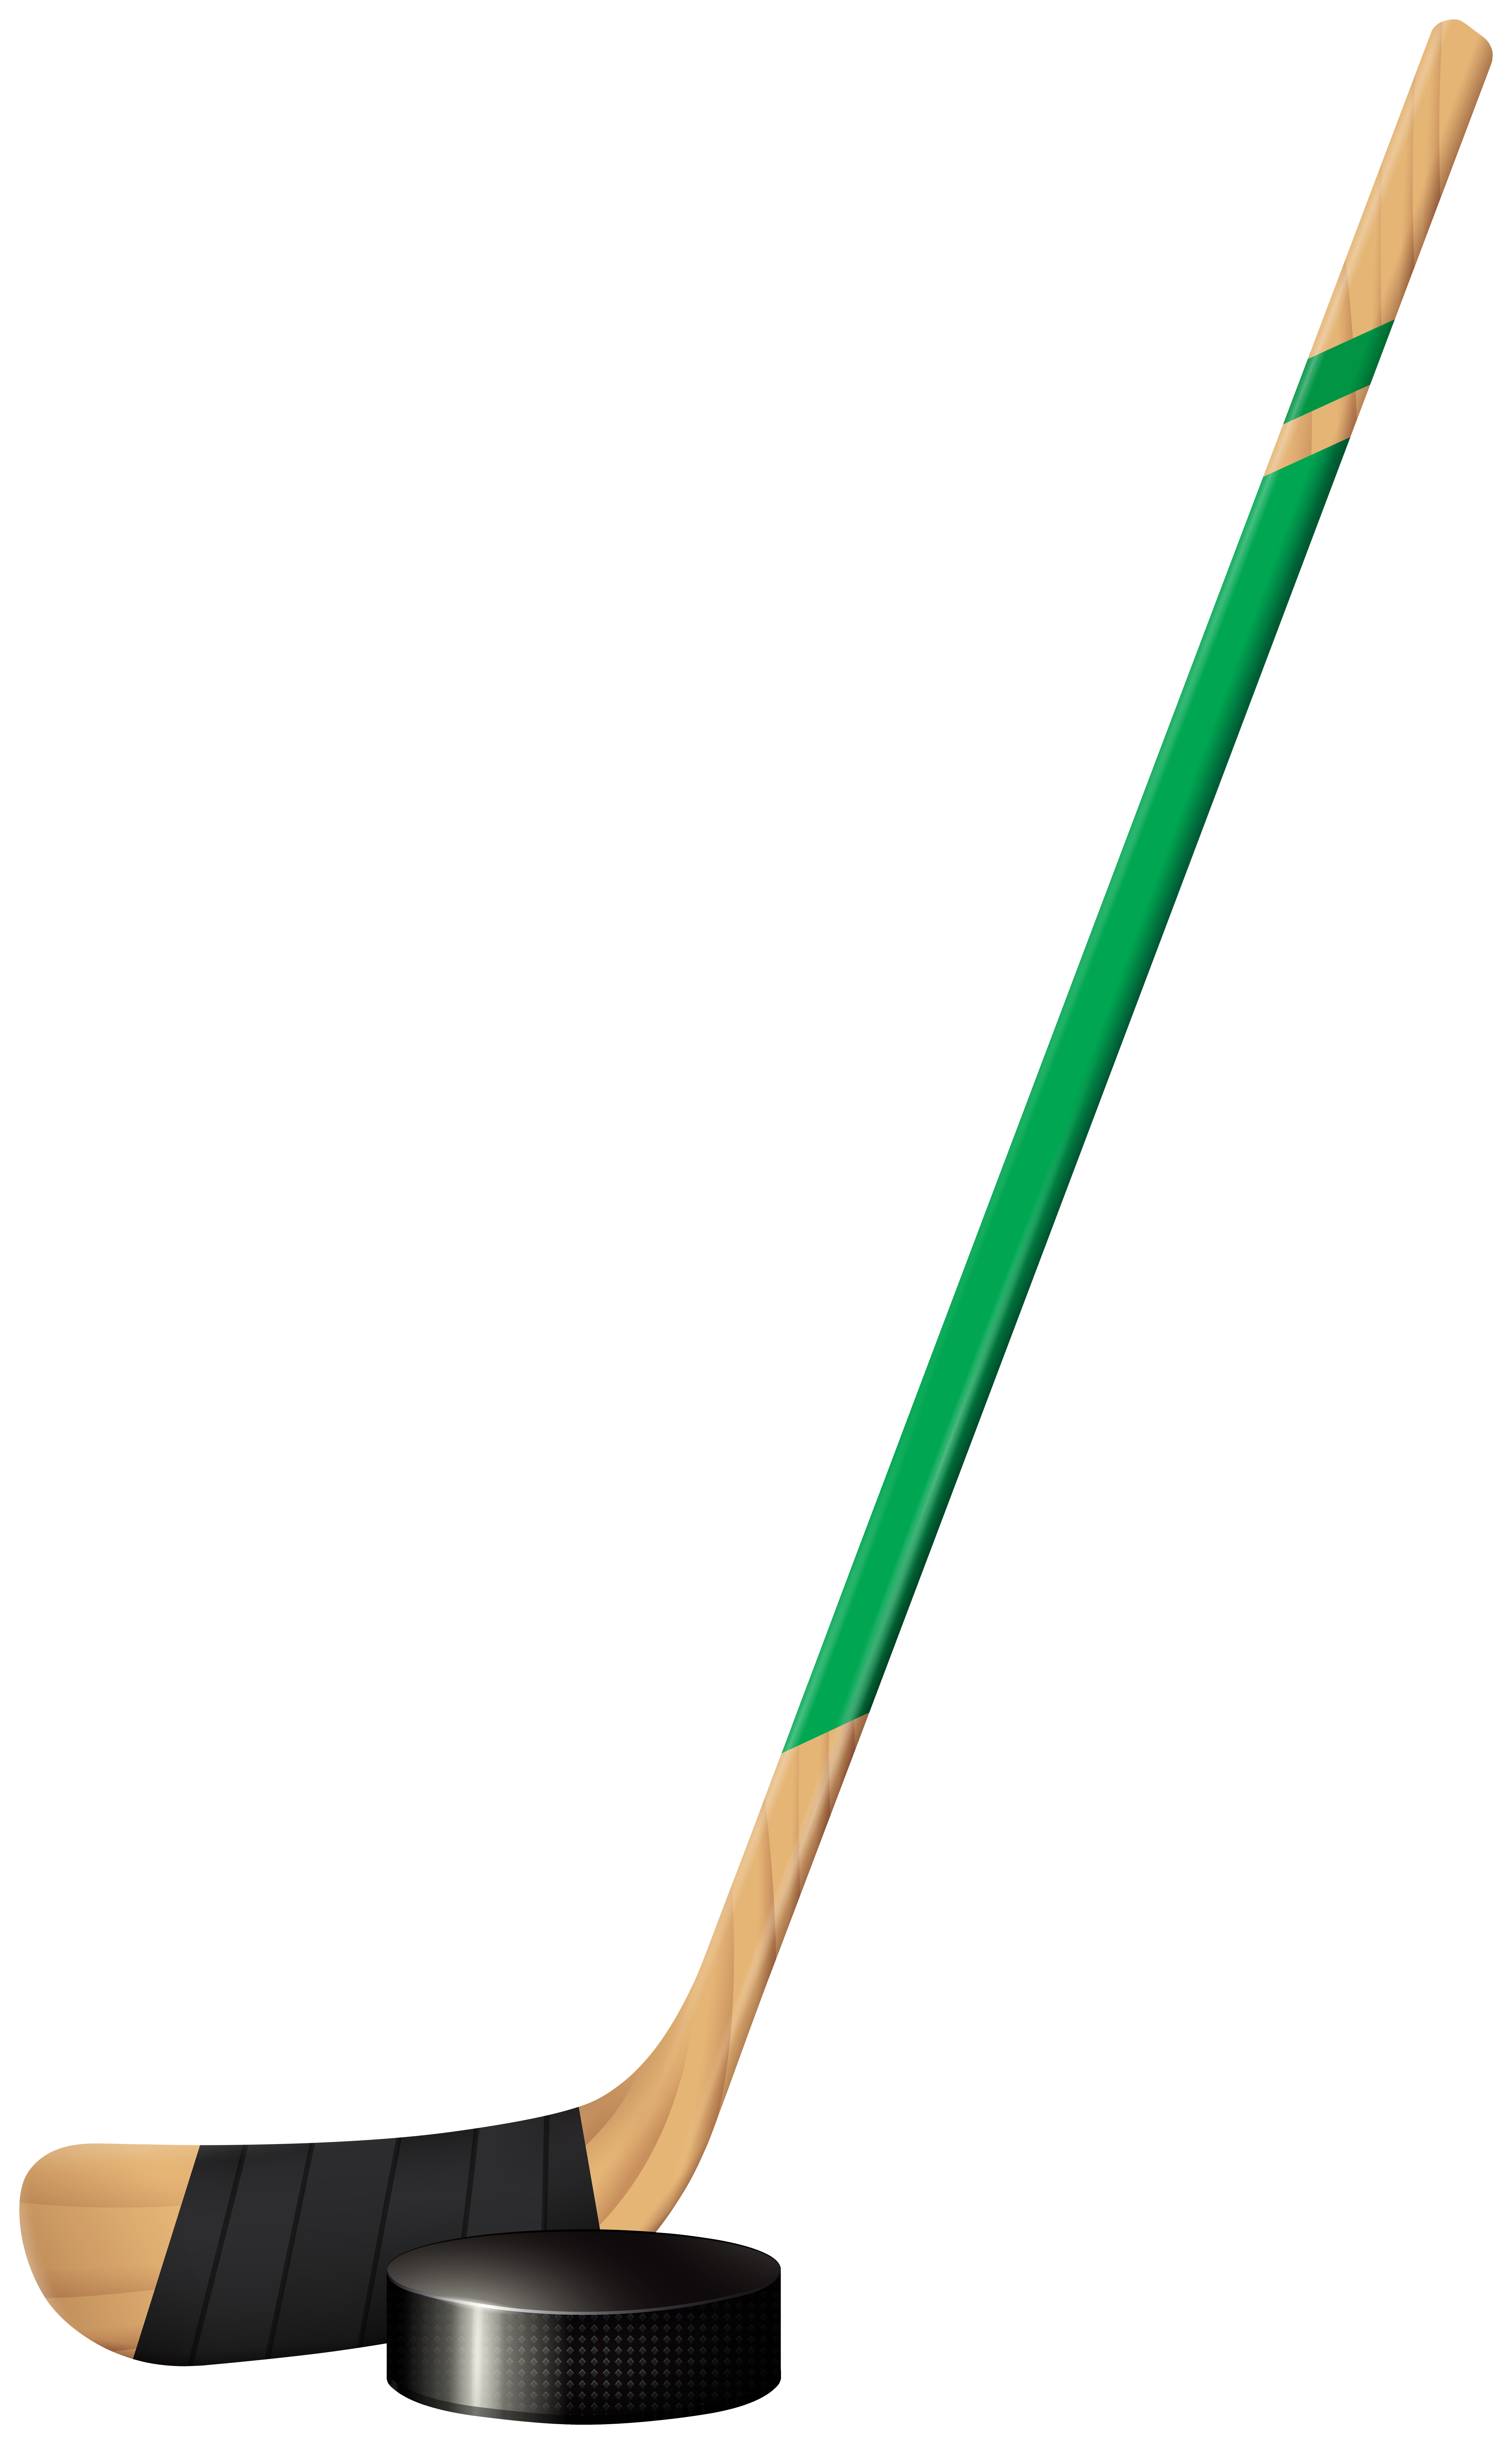 Hockey Stick and Puck Clipart Image.